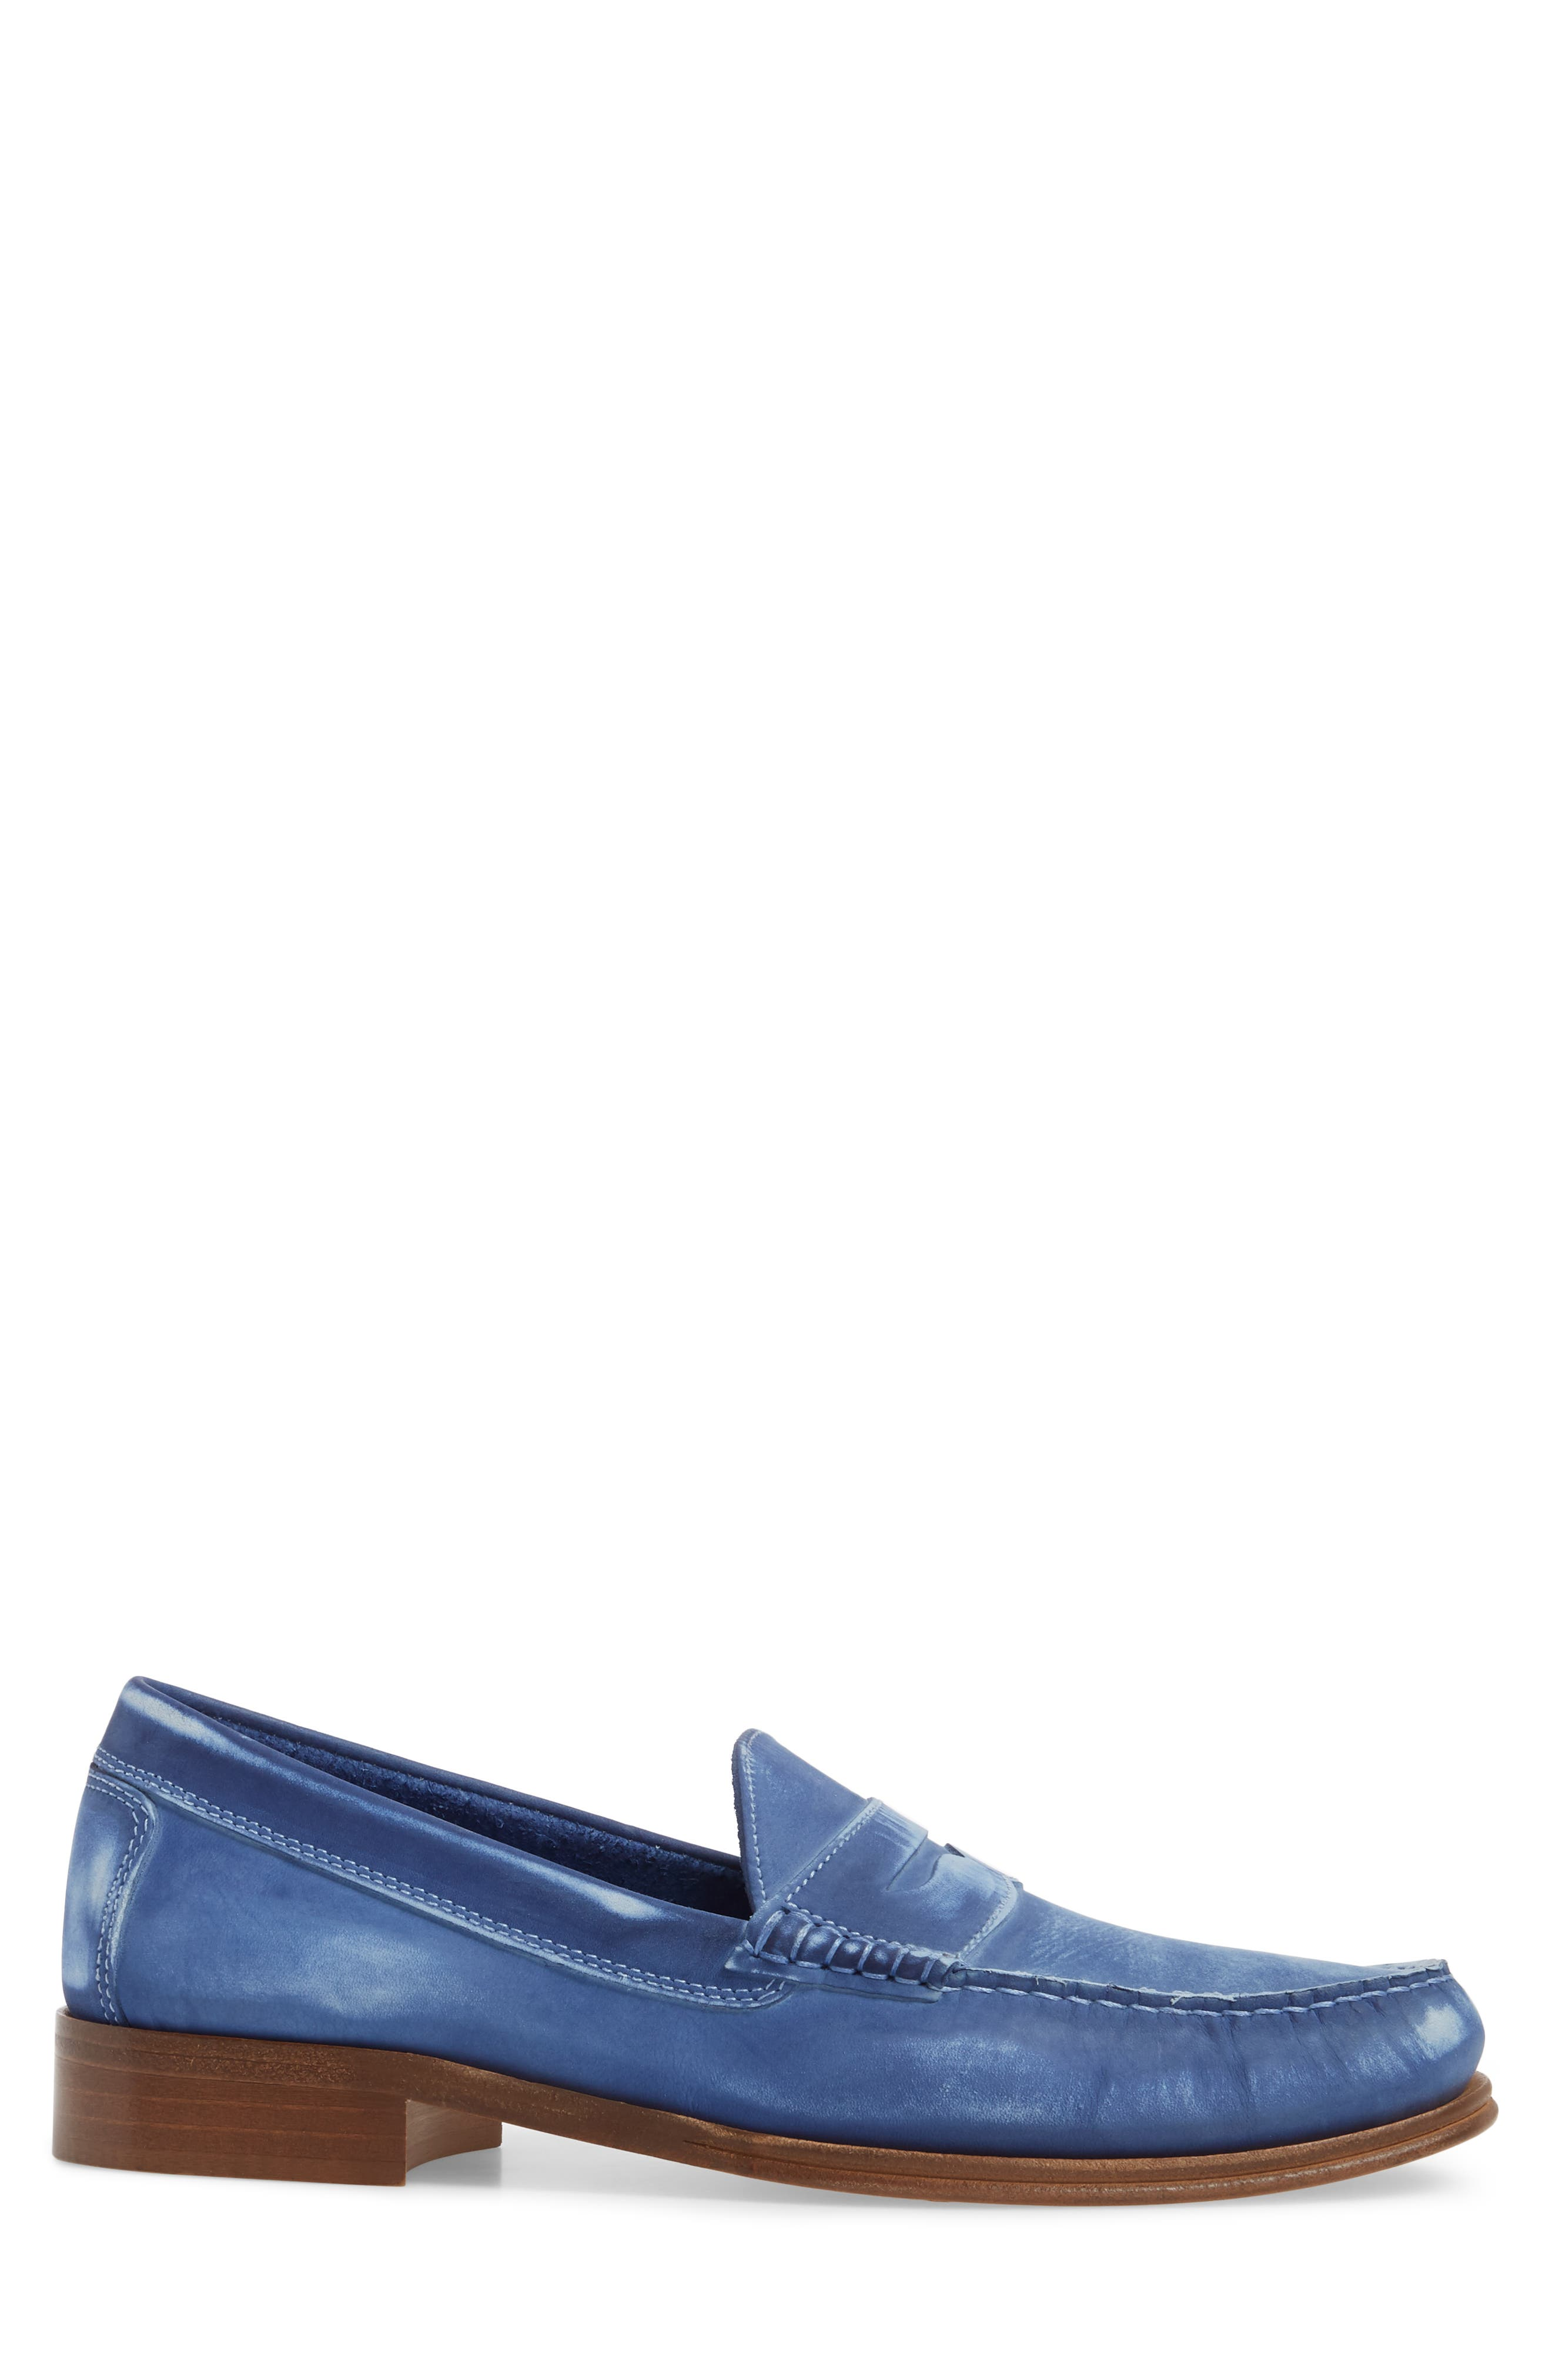 Nicola Penny Loafer,                             Alternate thumbnail 22, color,